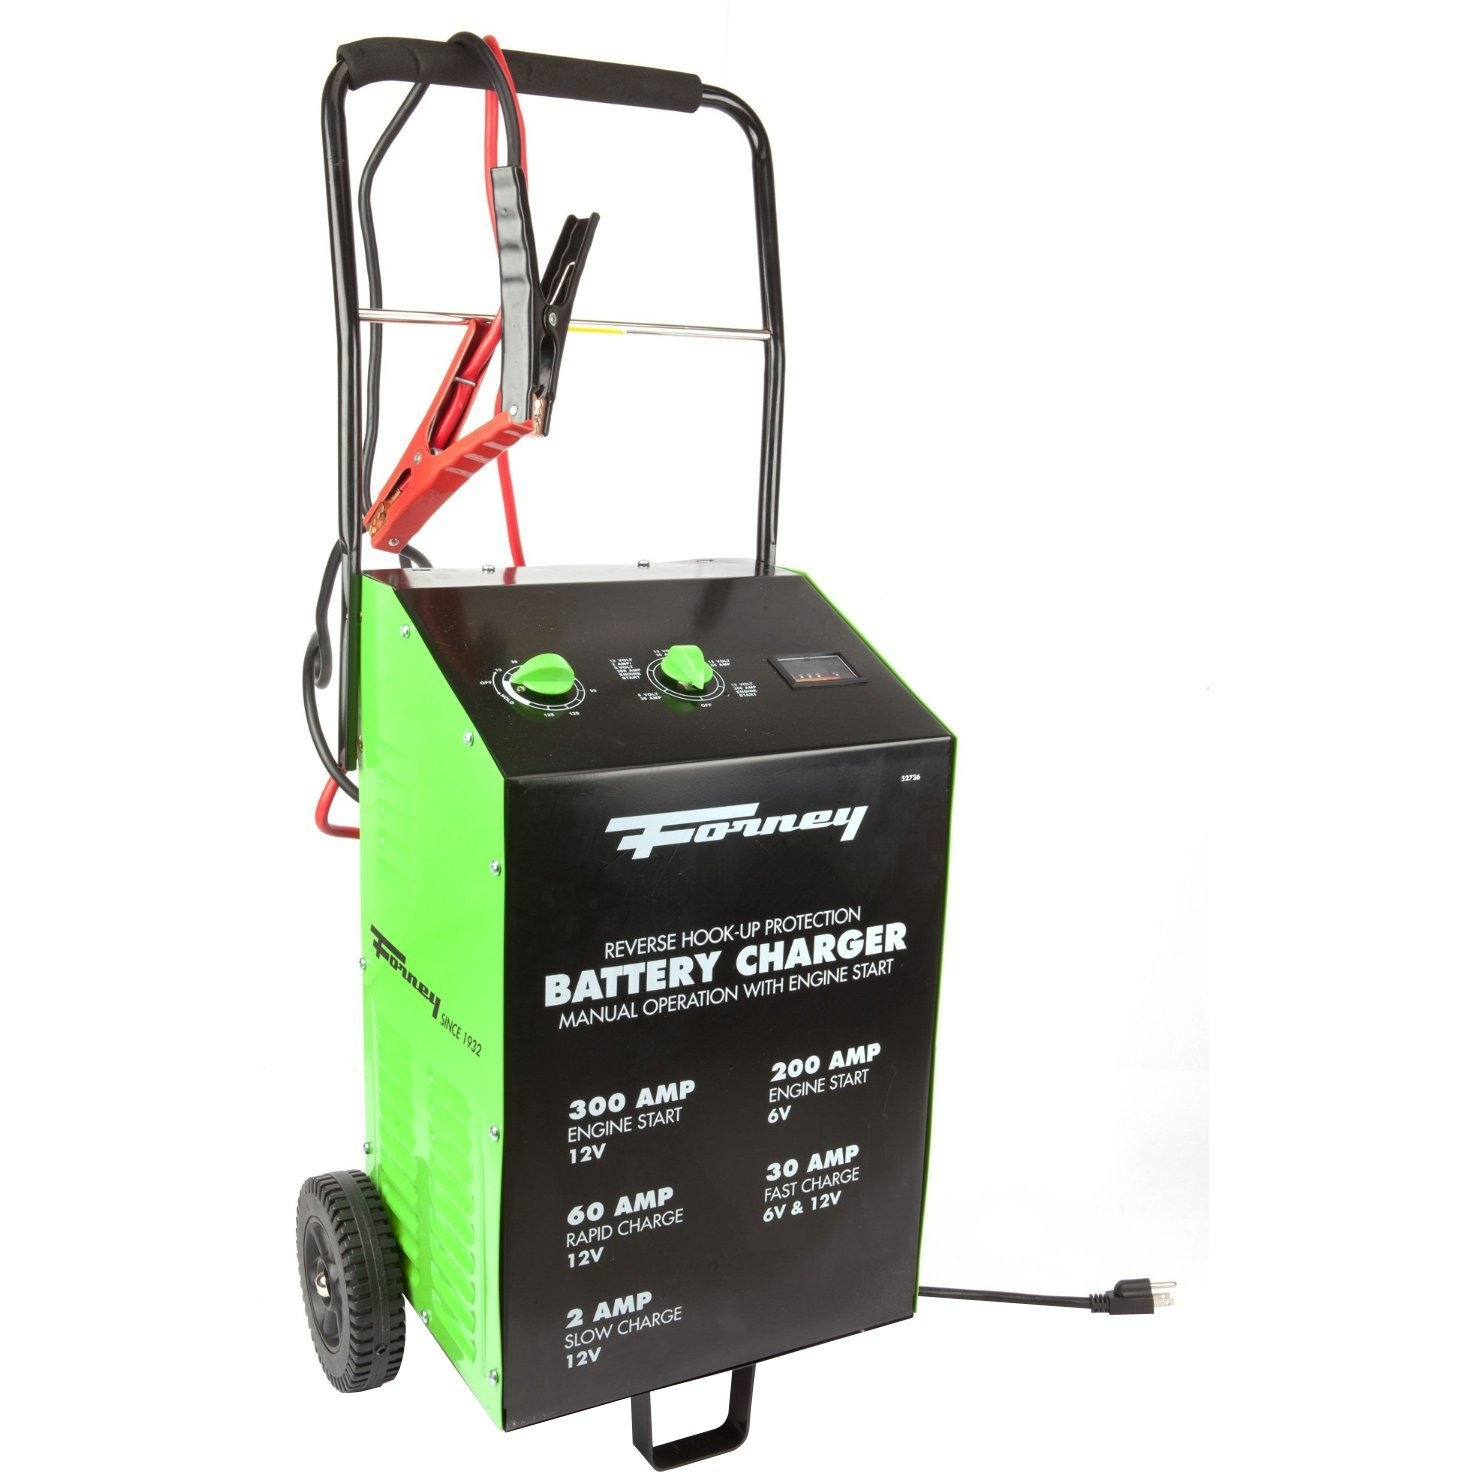 Battery Chargers, Testers, and Cleaners